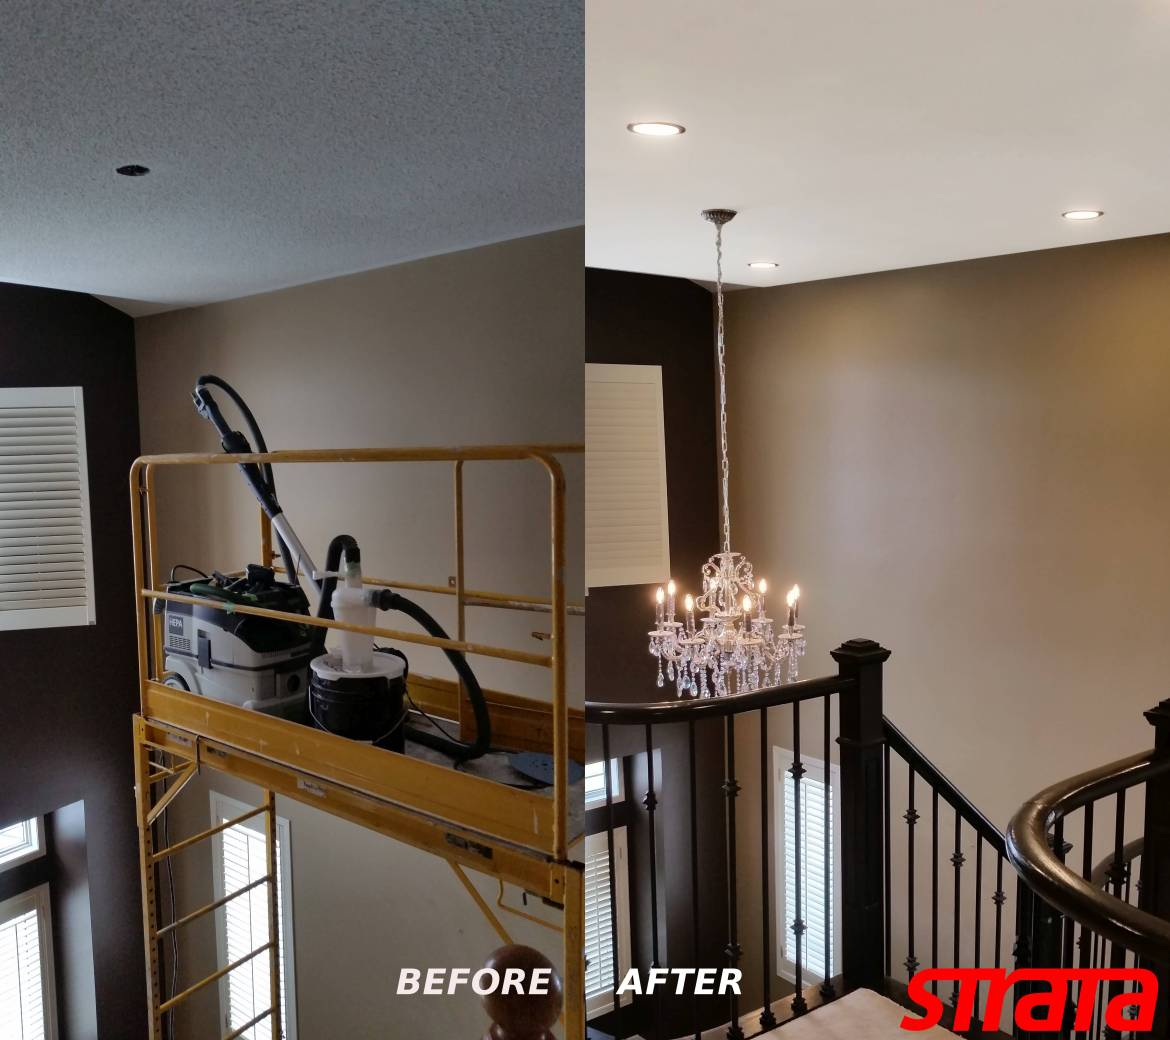 Smooth-Ceilings-Toronto-Removing-Popcorn-Textured-Ceilings-Dustless-Ceiling-Stucco-Popcorn-Texture-Removal-by-Strataline.ca-Toronto-Vaughan-Aurora-King-Nemwarket-Markham-Woodbrodge-Mississauga-Brampton-Etobicoke-Scarborough